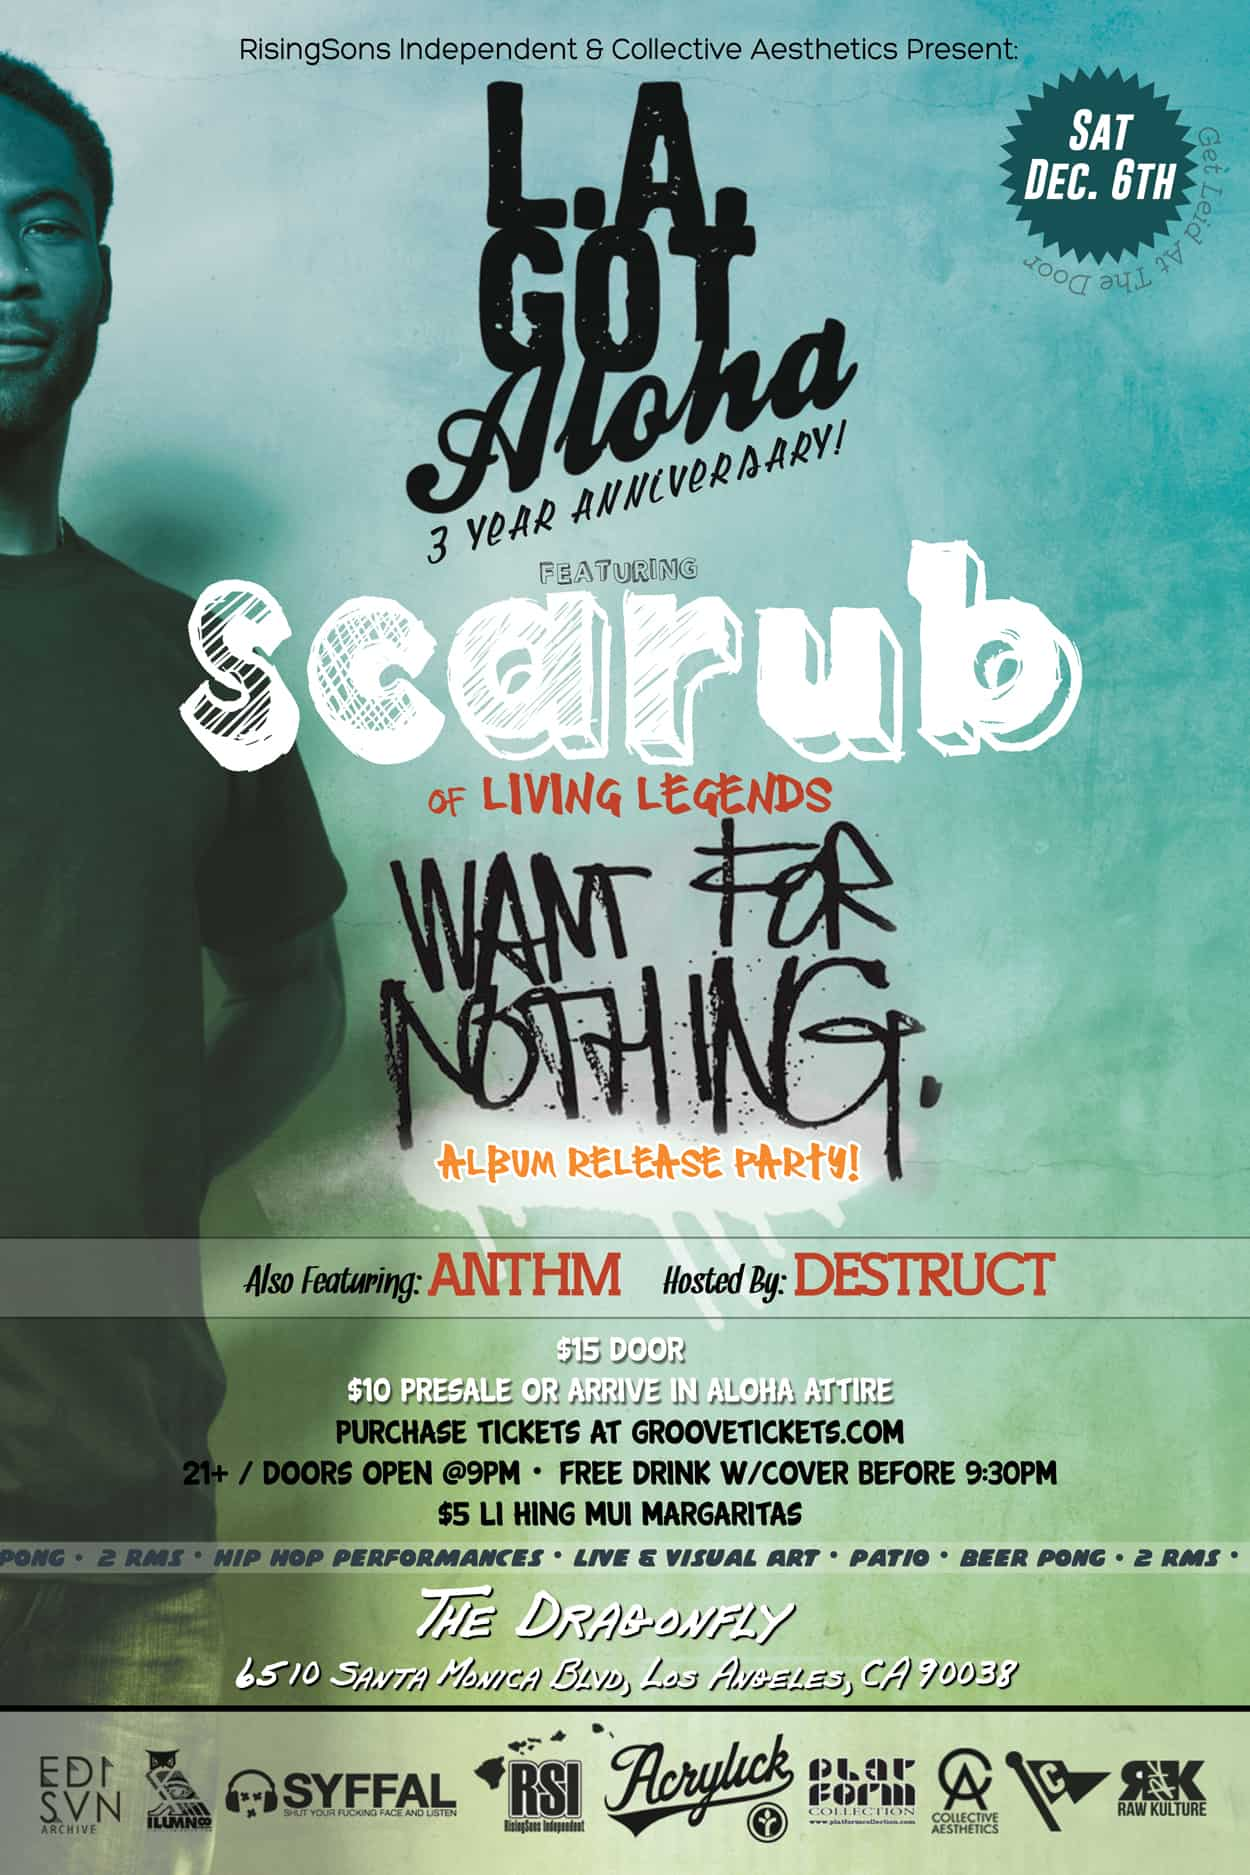 scarub - want for nothing - flyer design